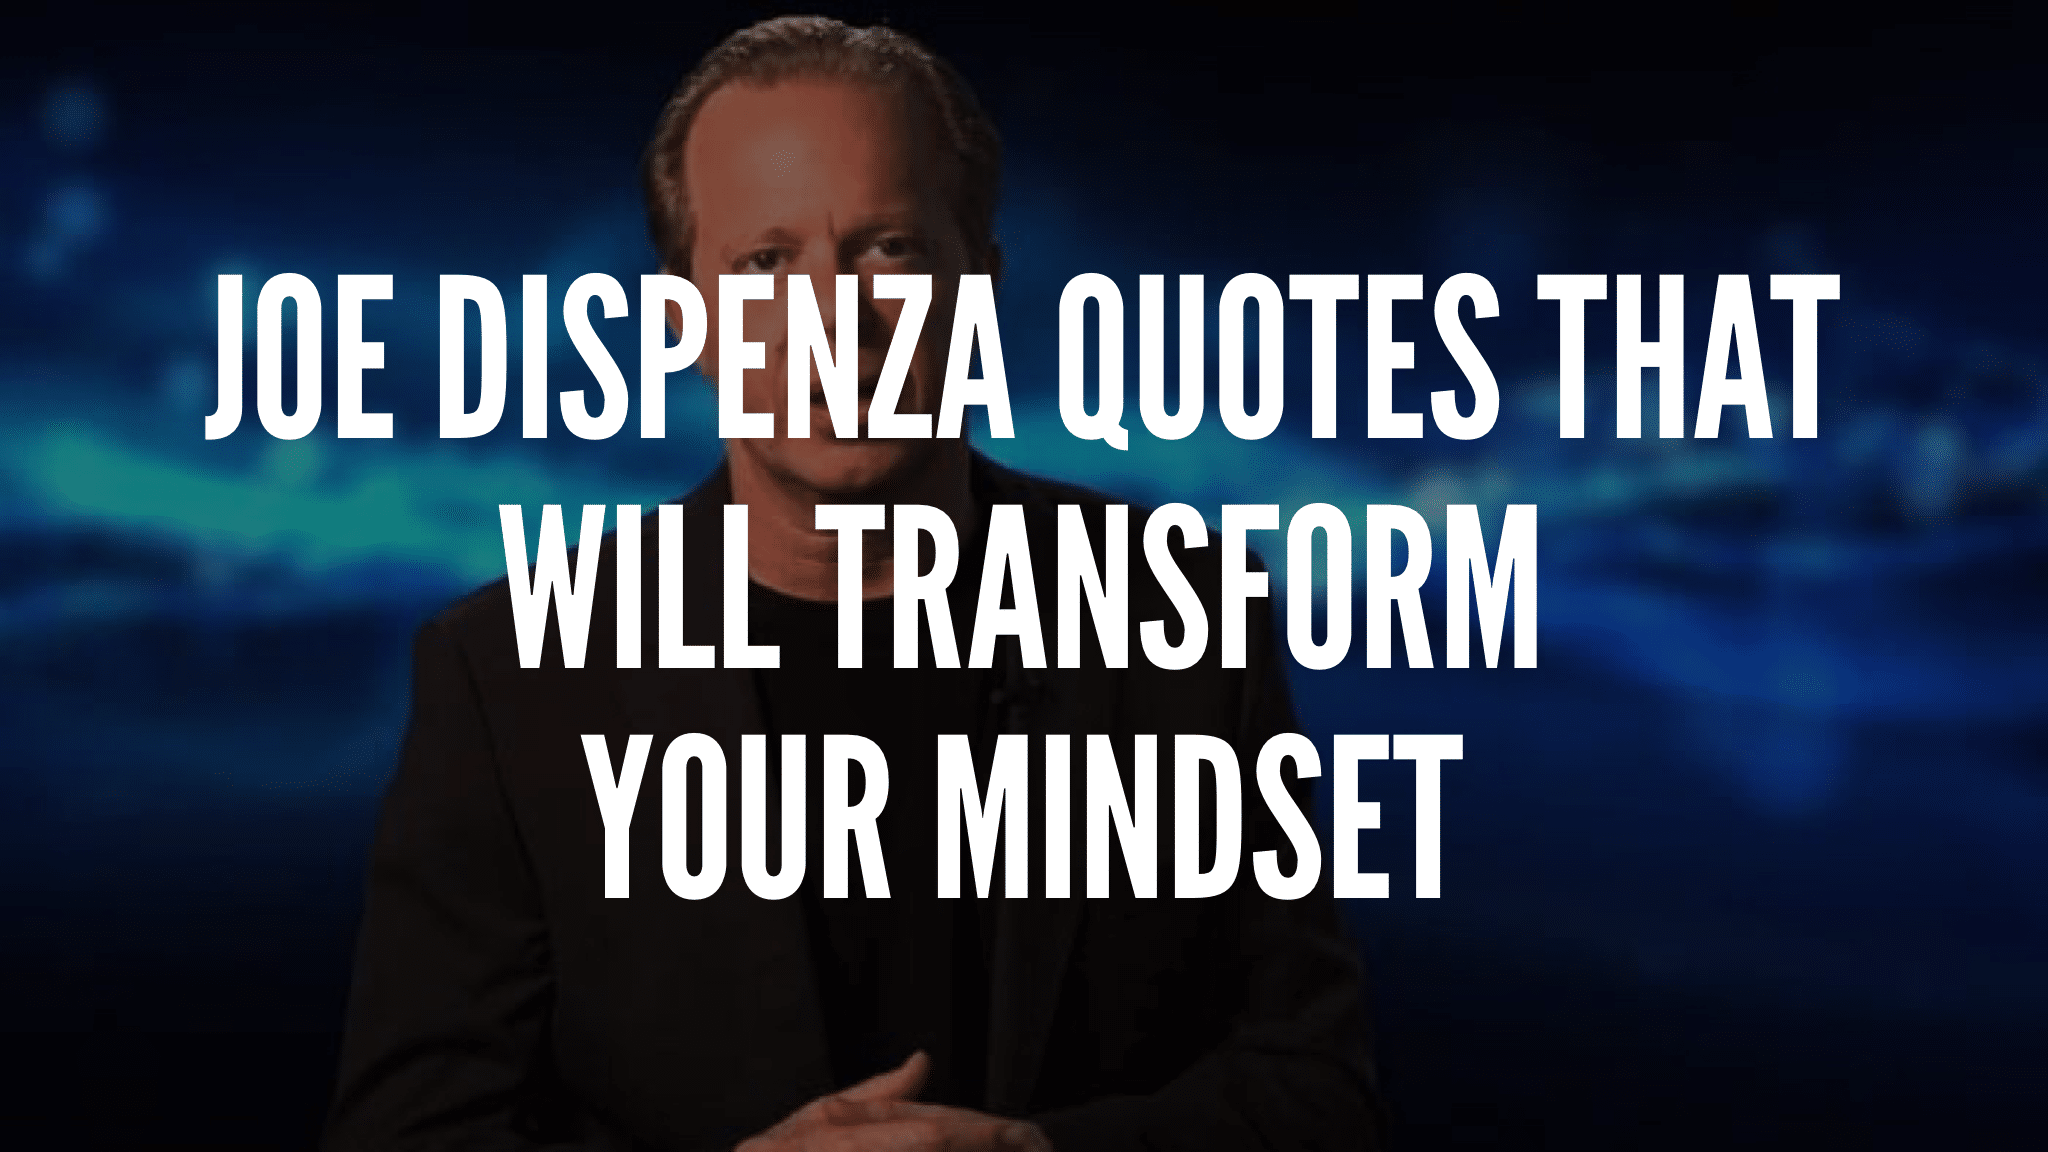 20 Joe Dispenza Quotes That Will Transform Your Mindset